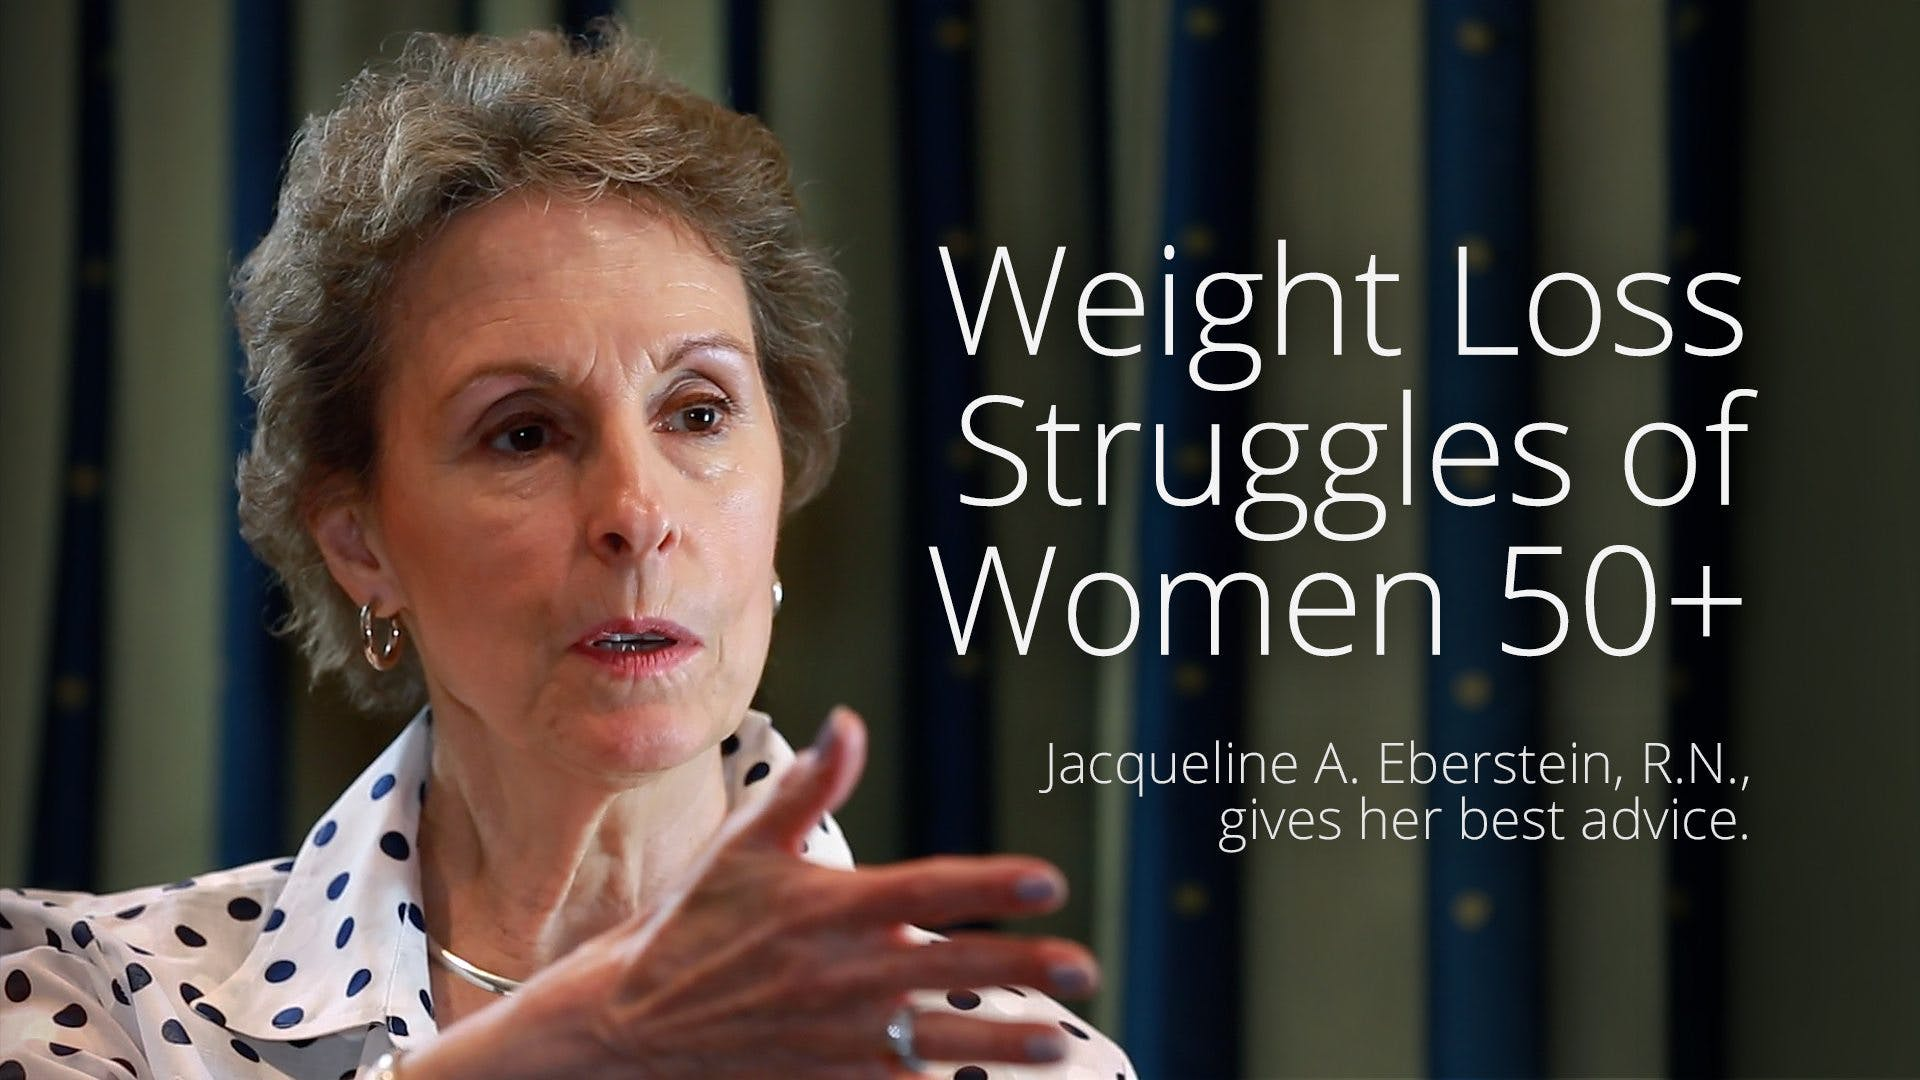 Weight Loss Struggles of Women 50+